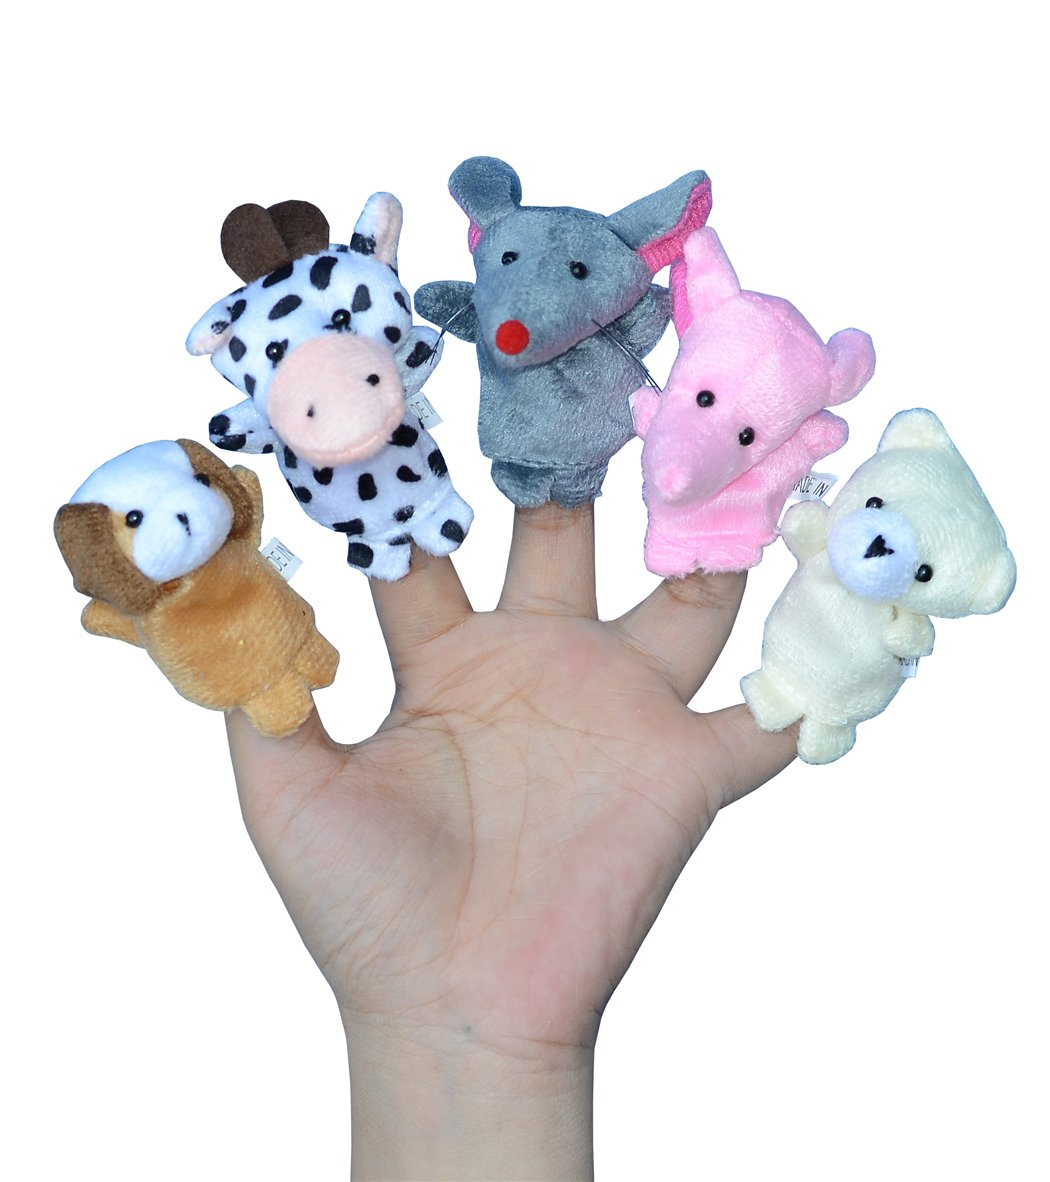 Finger Puppets for Children, Velvet Cute Animal And Family Style, Shows, Playtime, Schools Dolls Props Toys - 16 Different Set by leilaliya (Image #2)